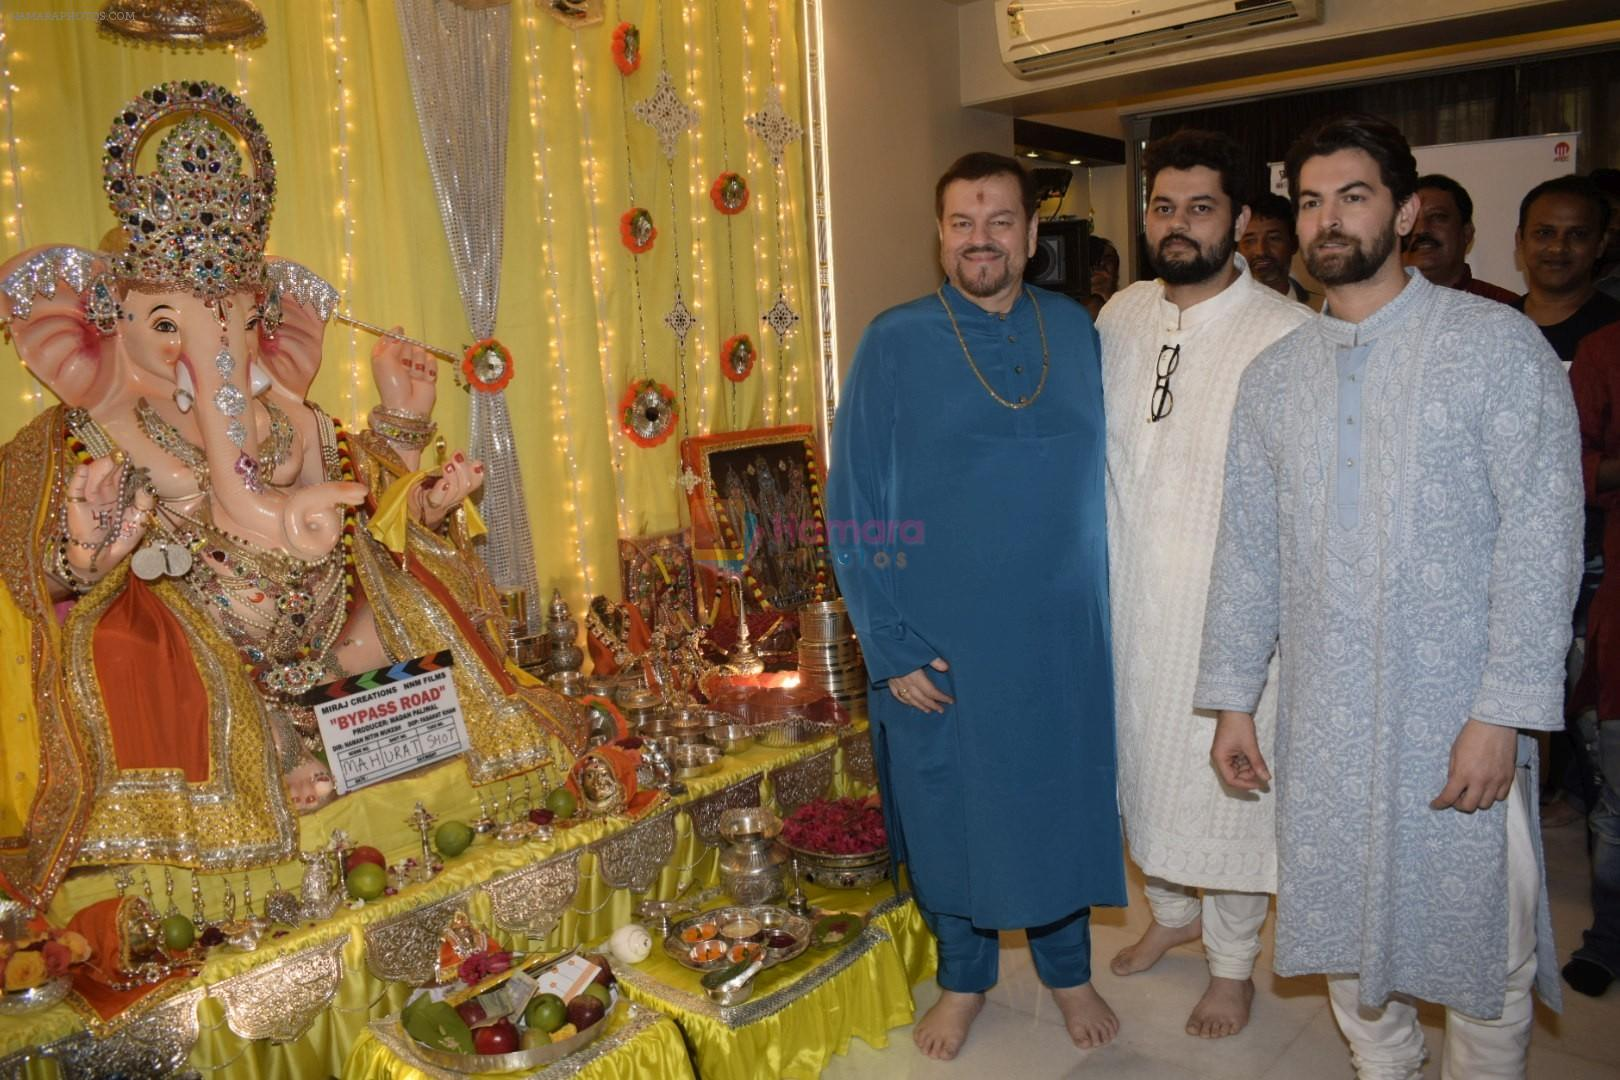 Neil, Nitin and Naman Mukesh celebrates Ganesh chaturthi & muhutat of his brother's directorial debut at his home on 13th Sept 2018